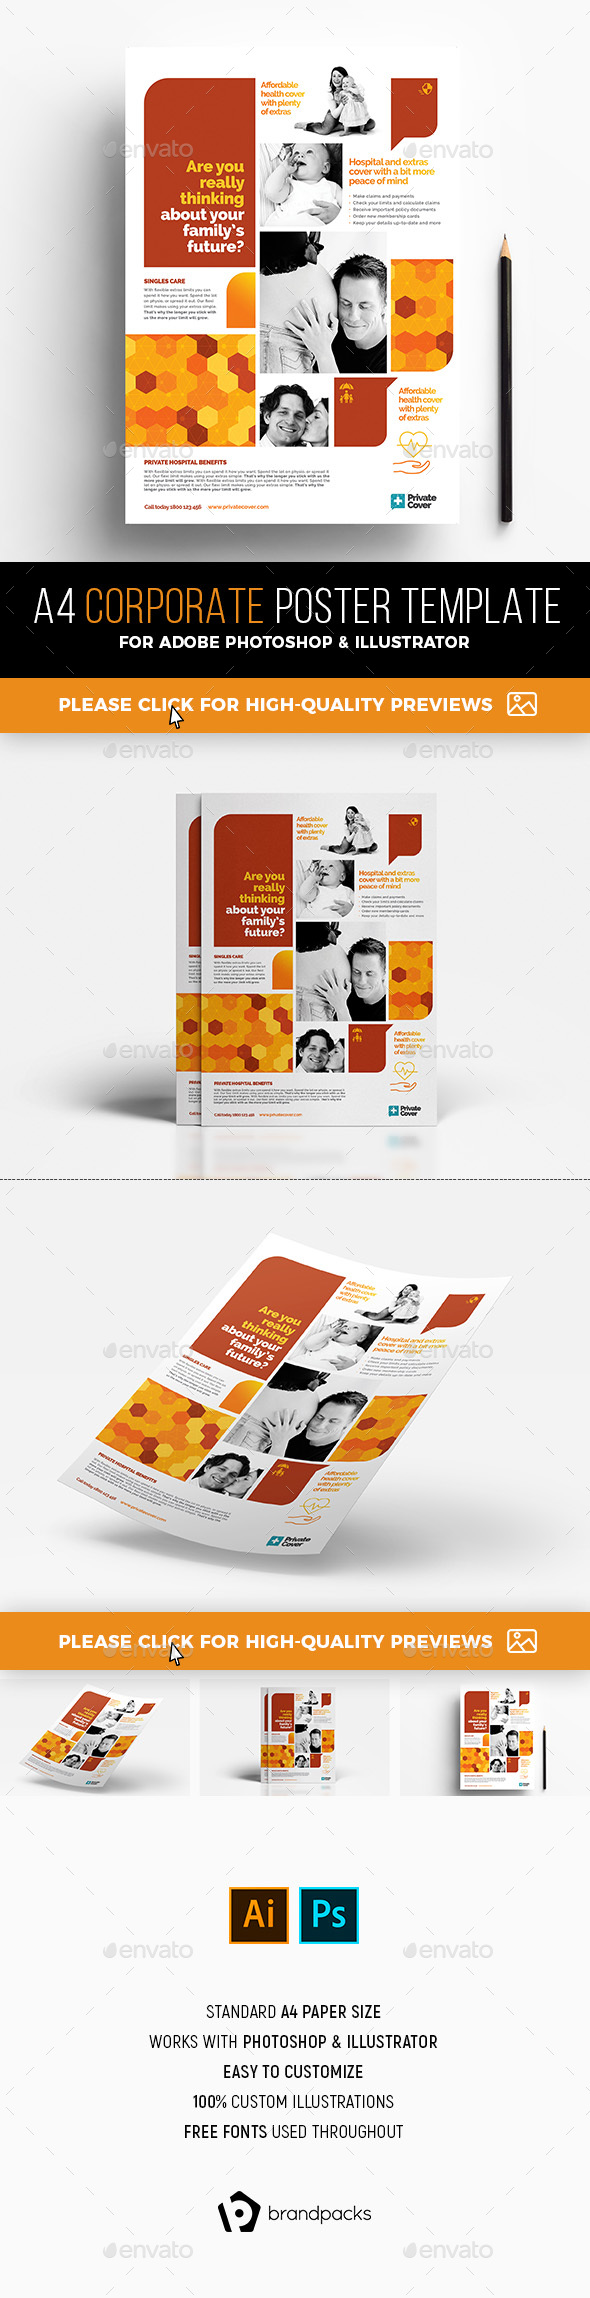 Poster template illustrator